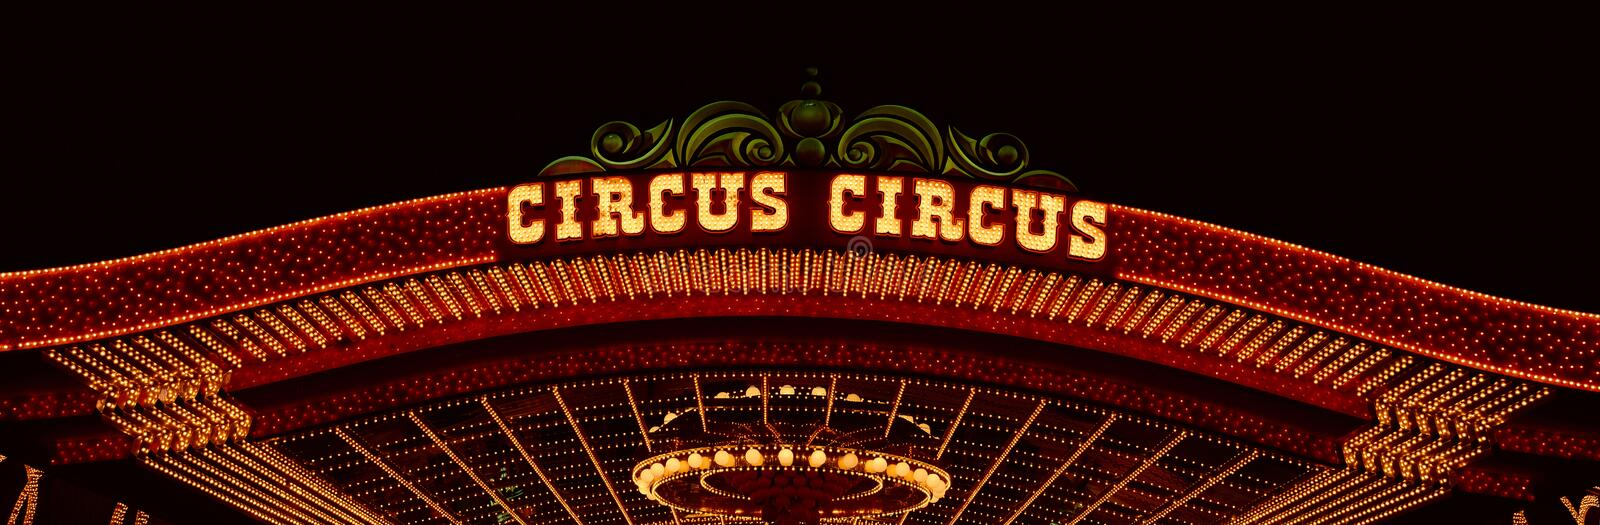 Panoramic view of neon lights of Circus Circus Casino, Las Vegas, NV royalty free stock photography